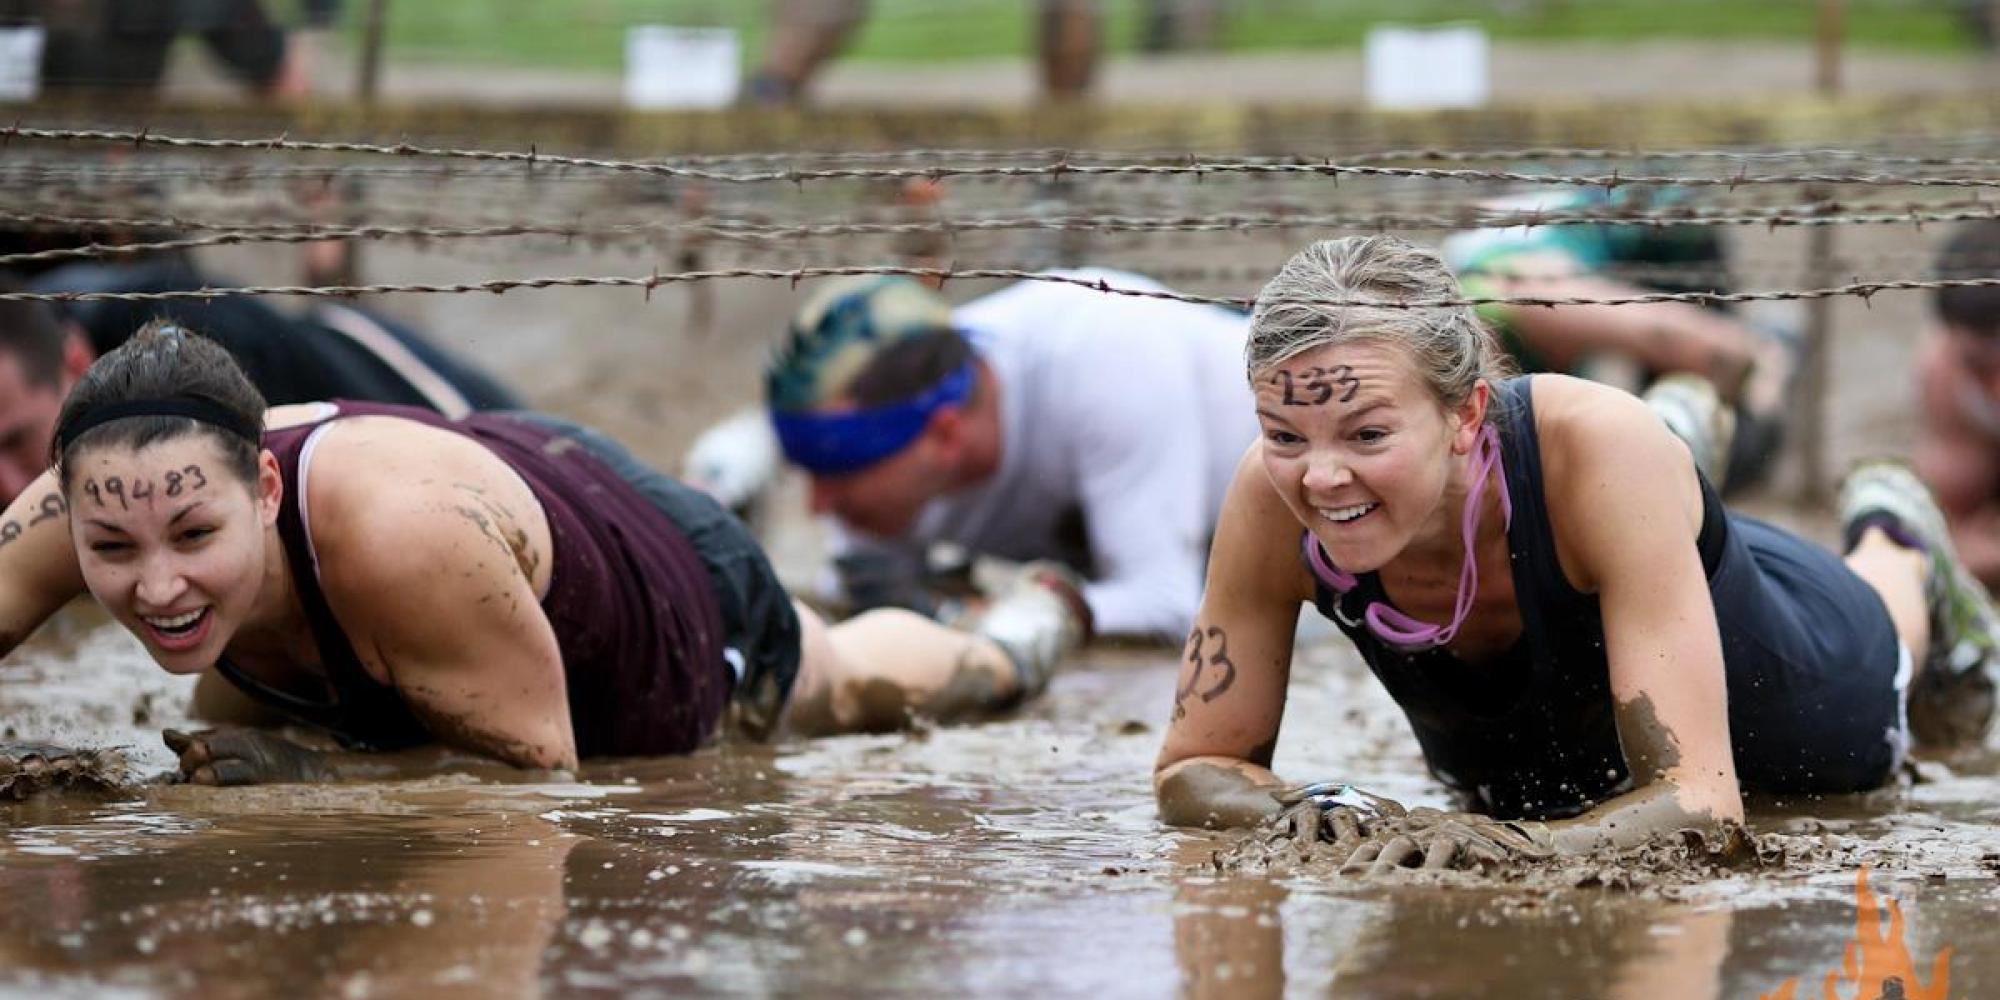 Tough Mudder: Obstacle Courses Give Ski Resorts A Summer Boost | HuffPost